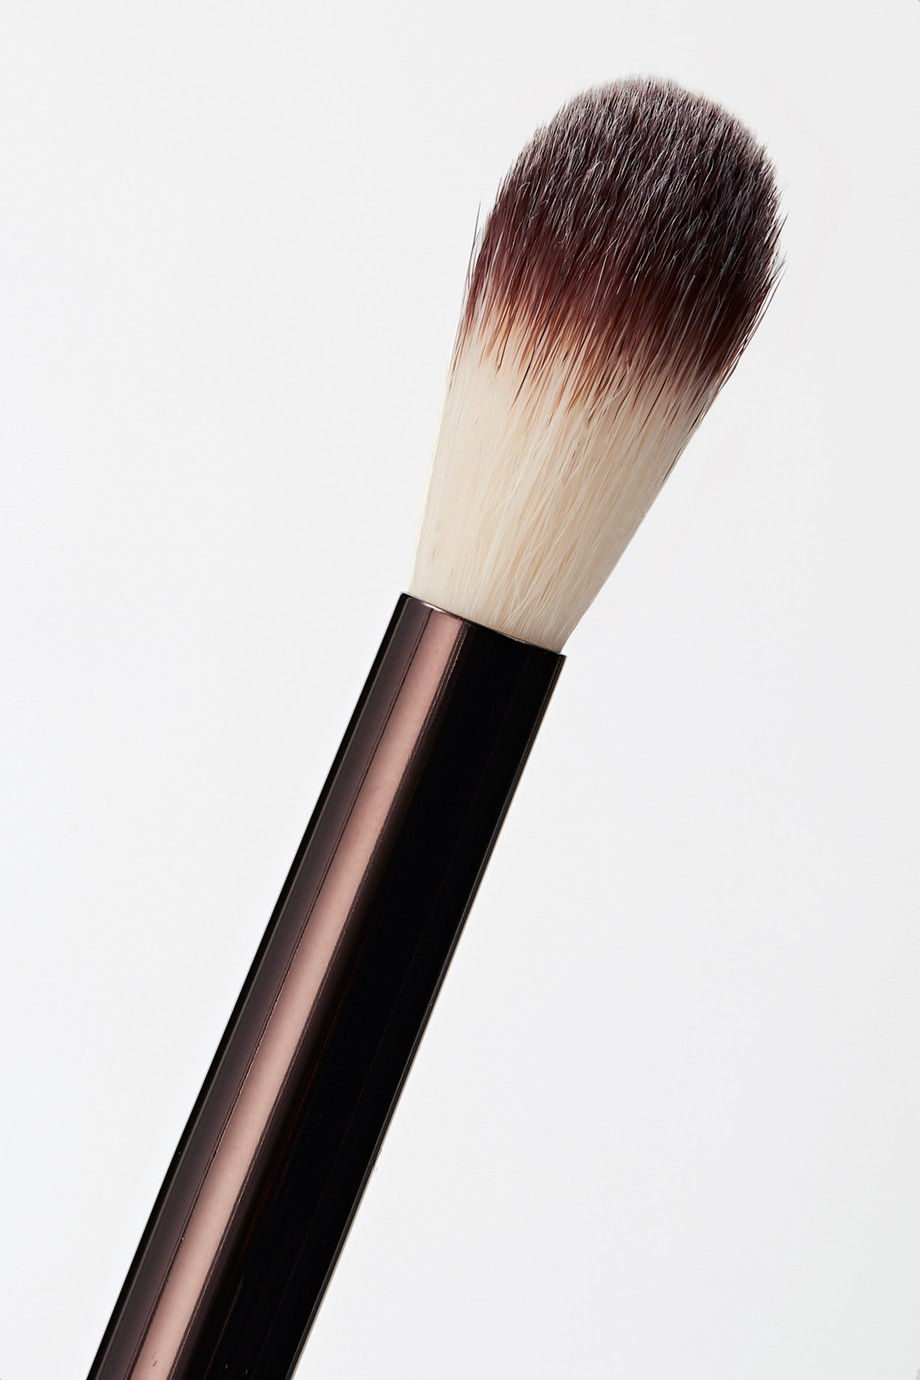 HOURGLASS Nº 14 Detail Setting Brush